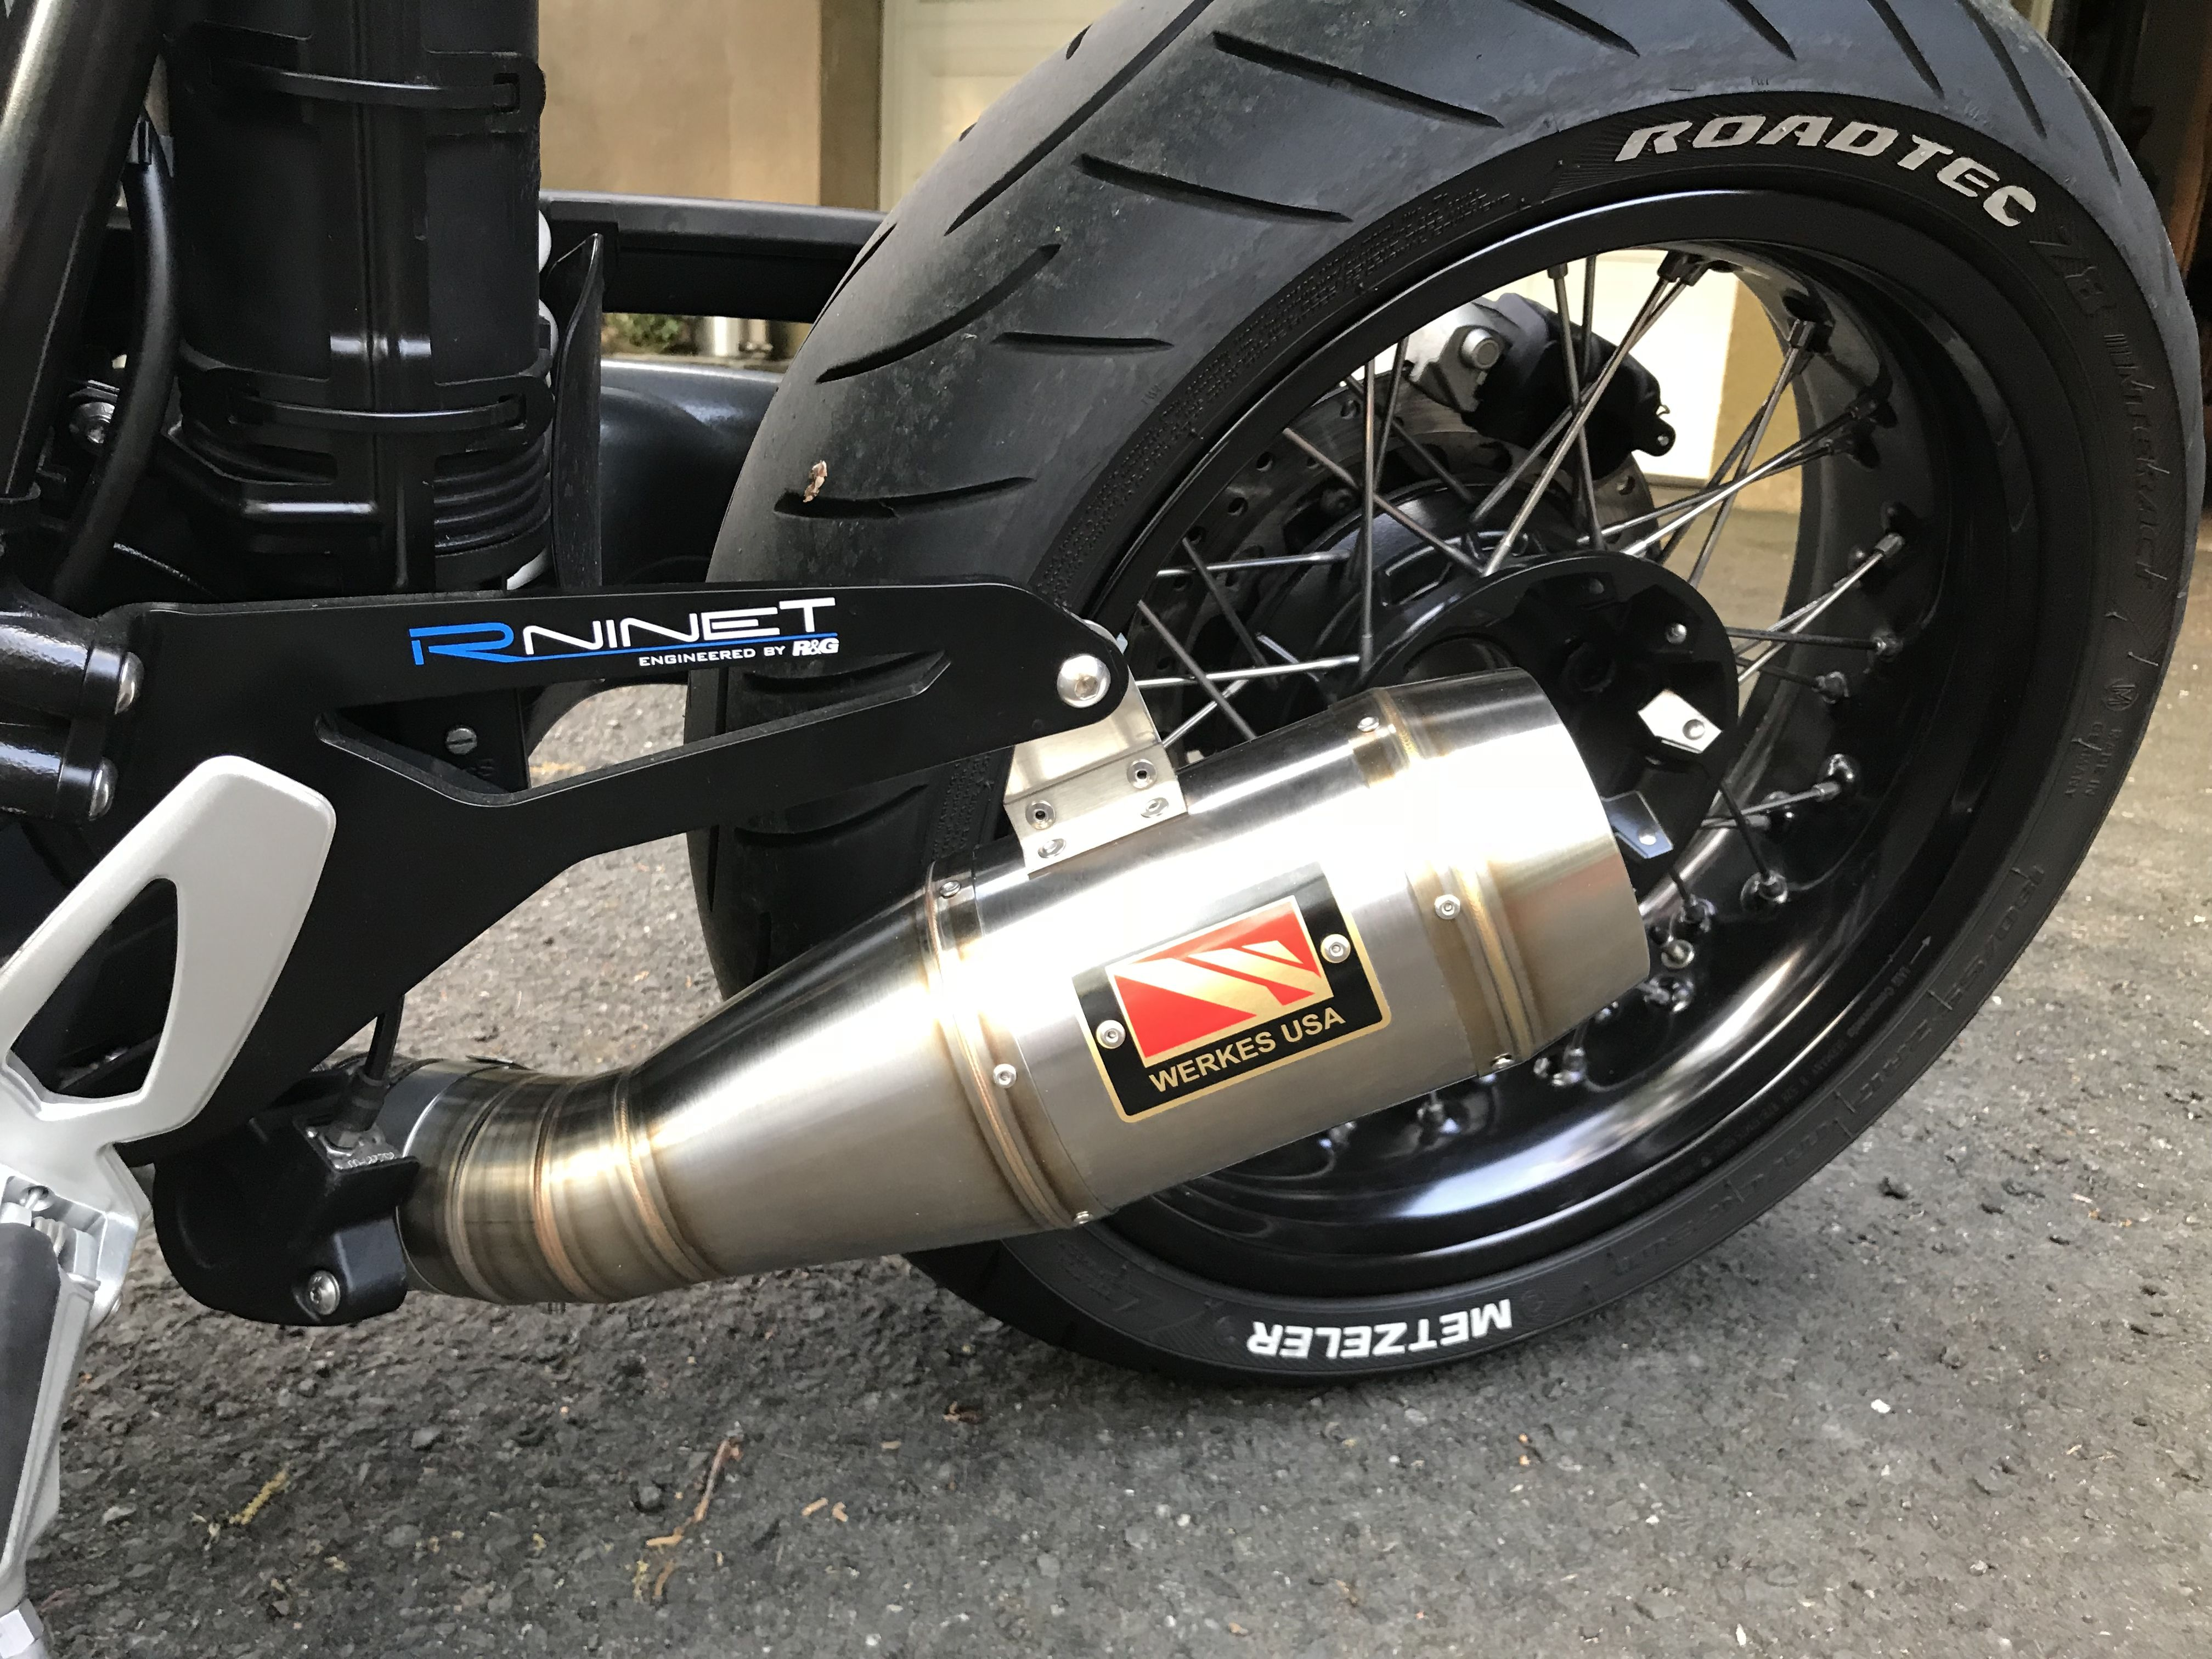 competition werkes slip on exhaust for